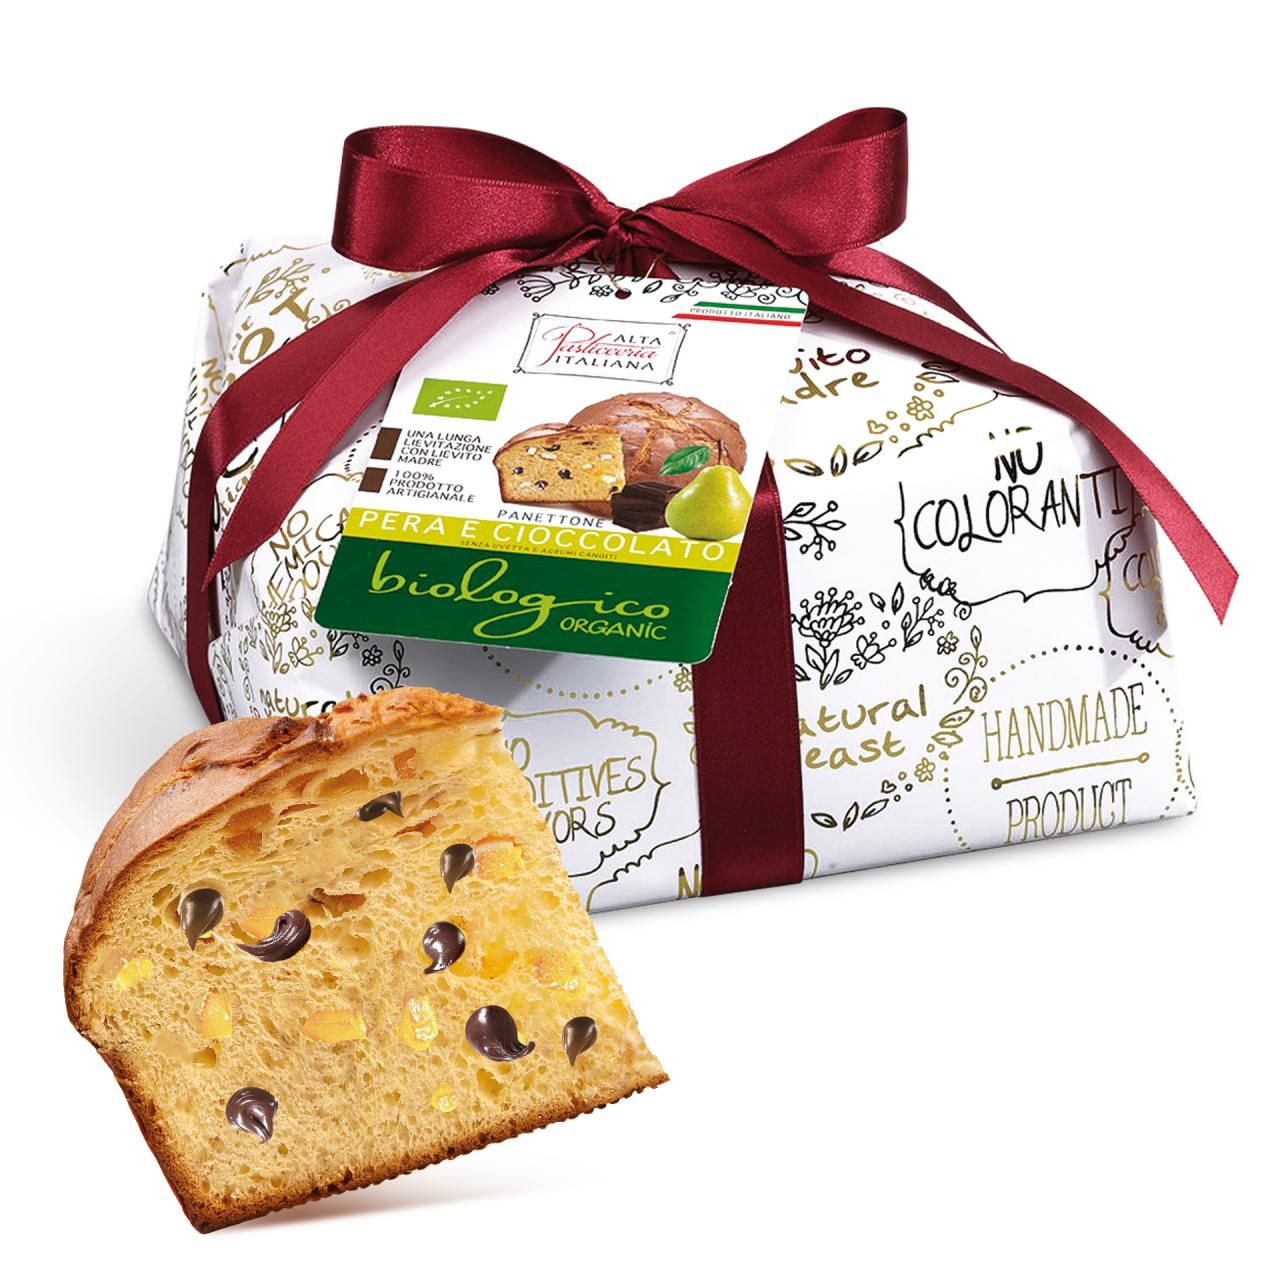 PEAR AND CHOCOLATE ORGANIC PANETTONE INCARTO ORO